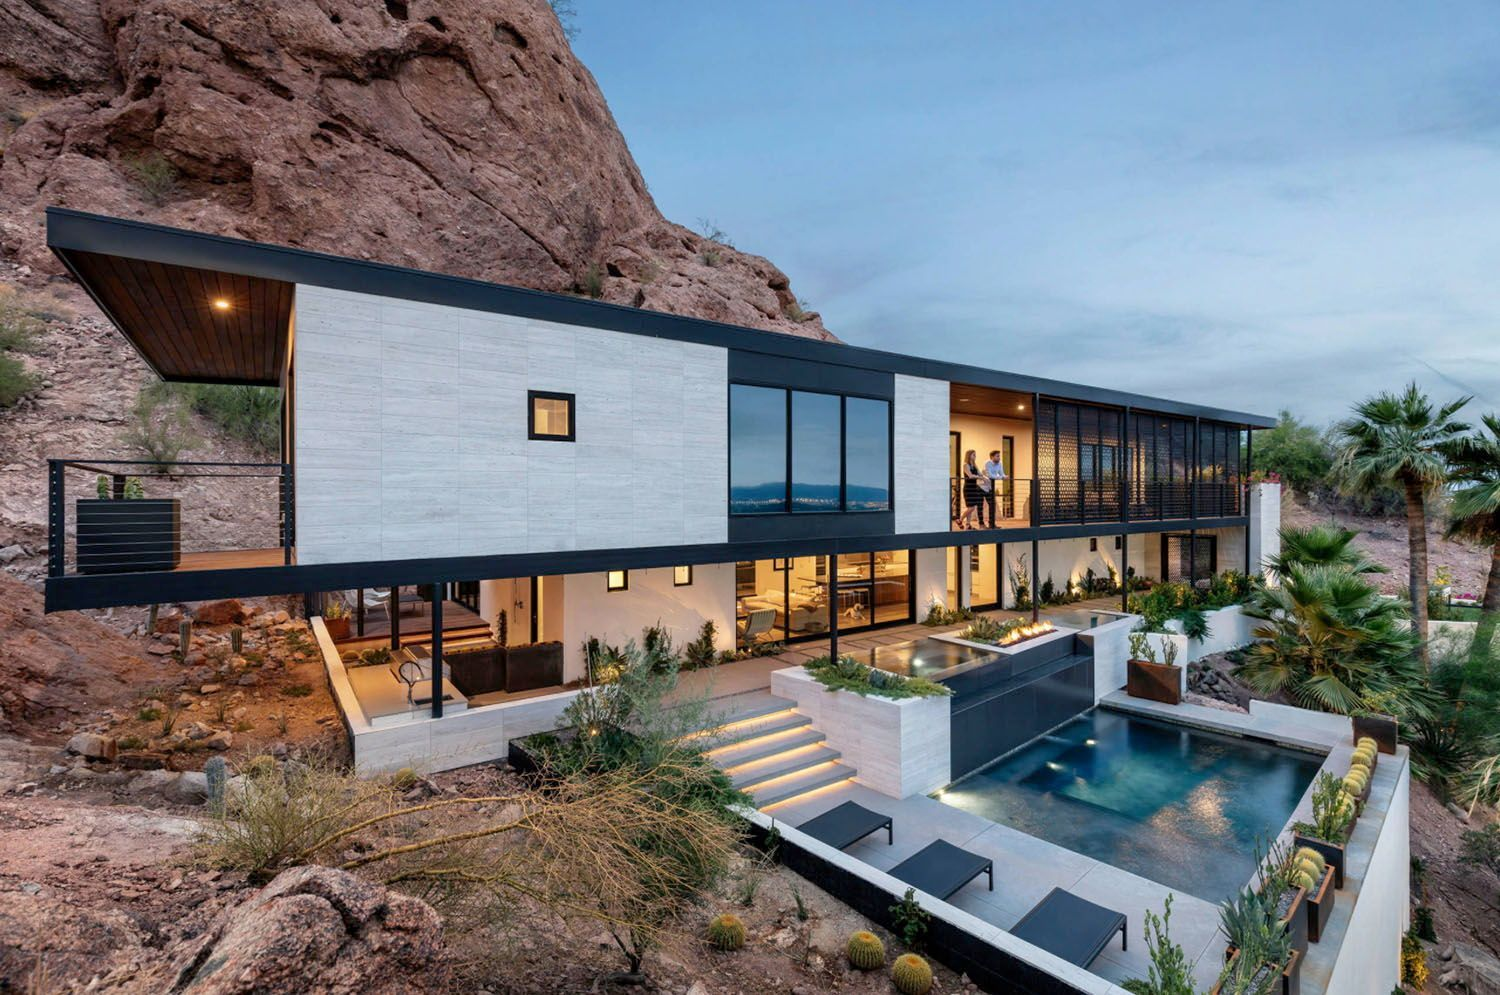 Mountainside Home Gets Spectacular Modern Remodel In The Arizona Desert In 2020 House On The Rock Spanish Style Homes Modern Remodel